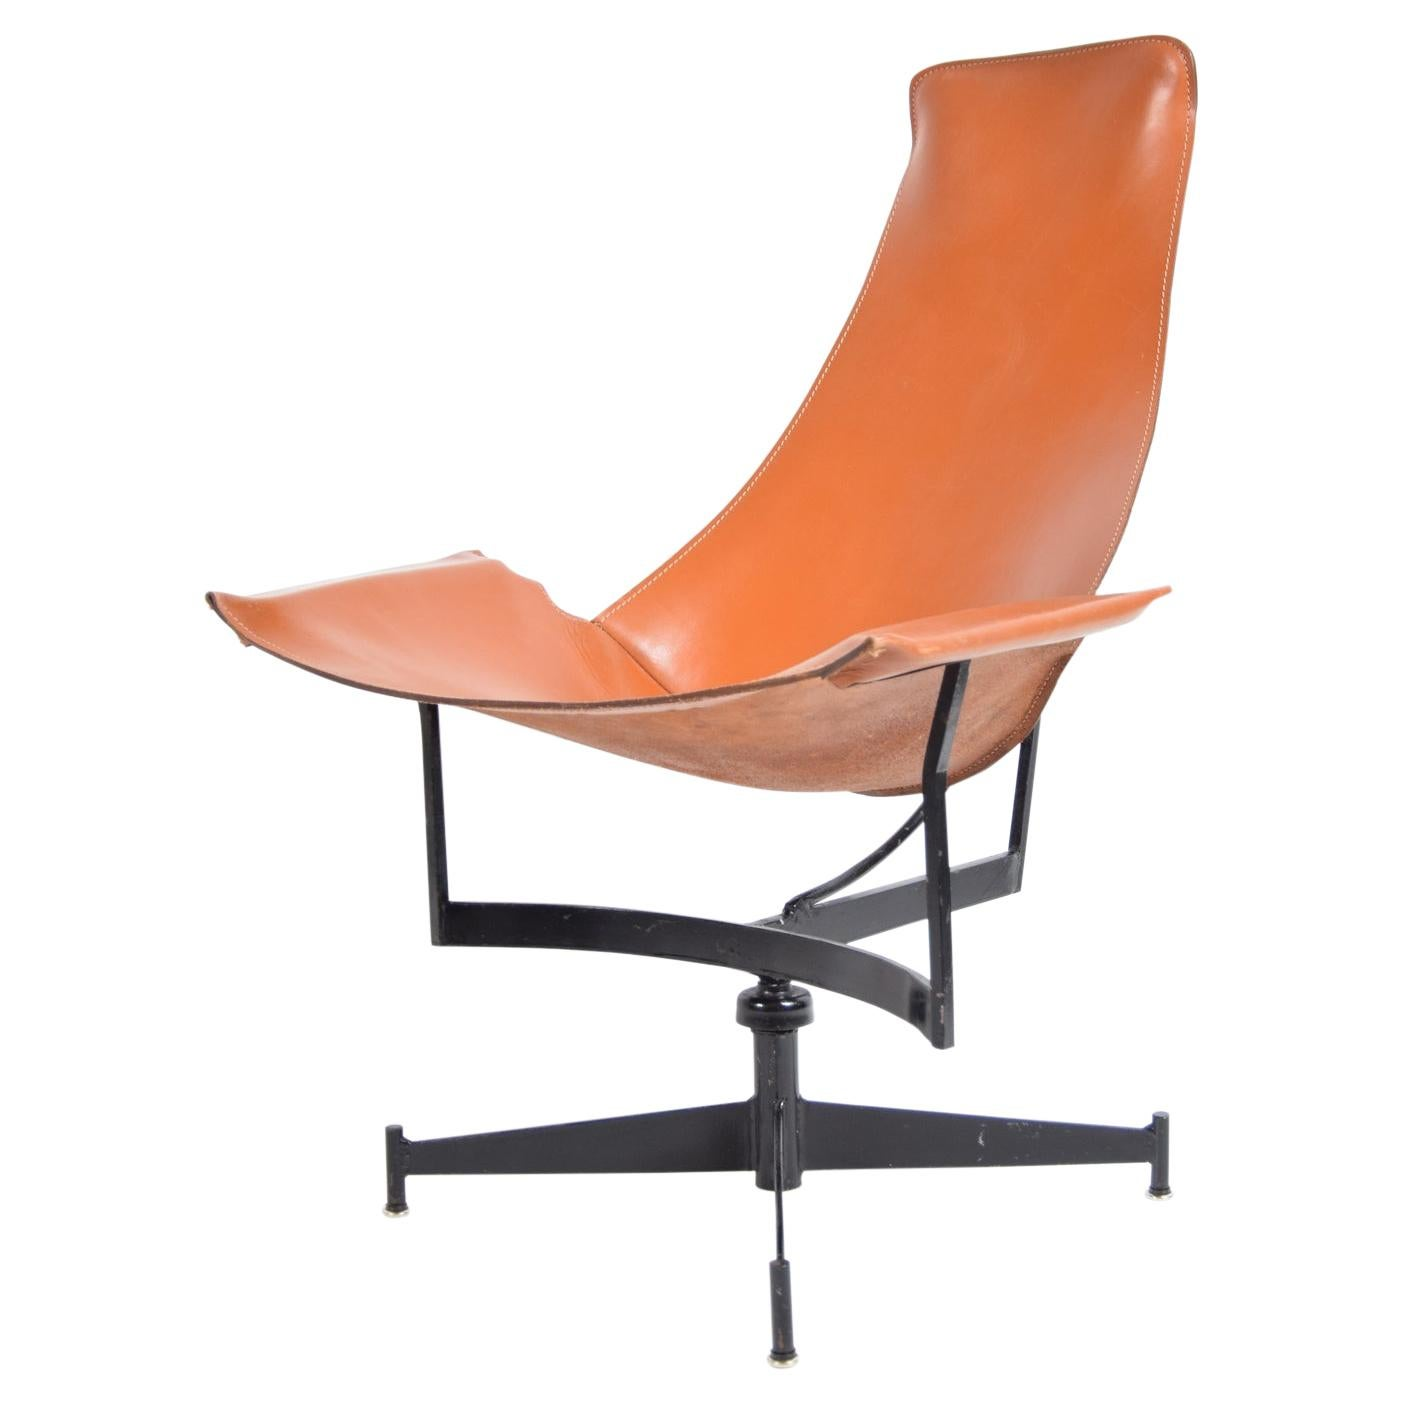 Leather and Steel Sling Chair by Max Gottschalk